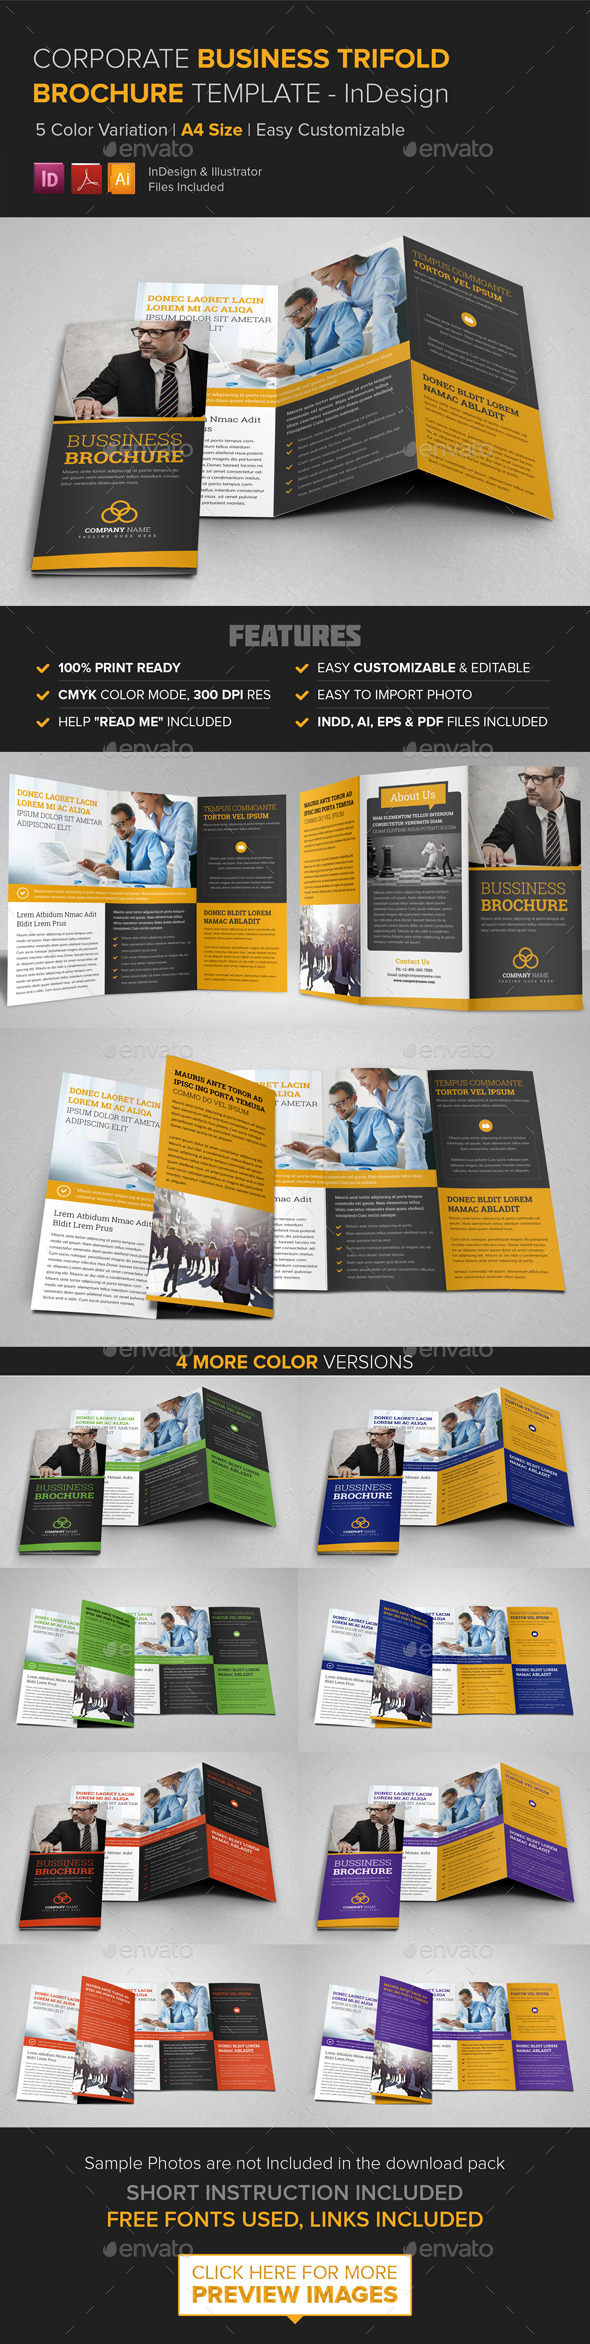 GraphicRiver Corporate Business Trifold Brochure InDesign 9465425